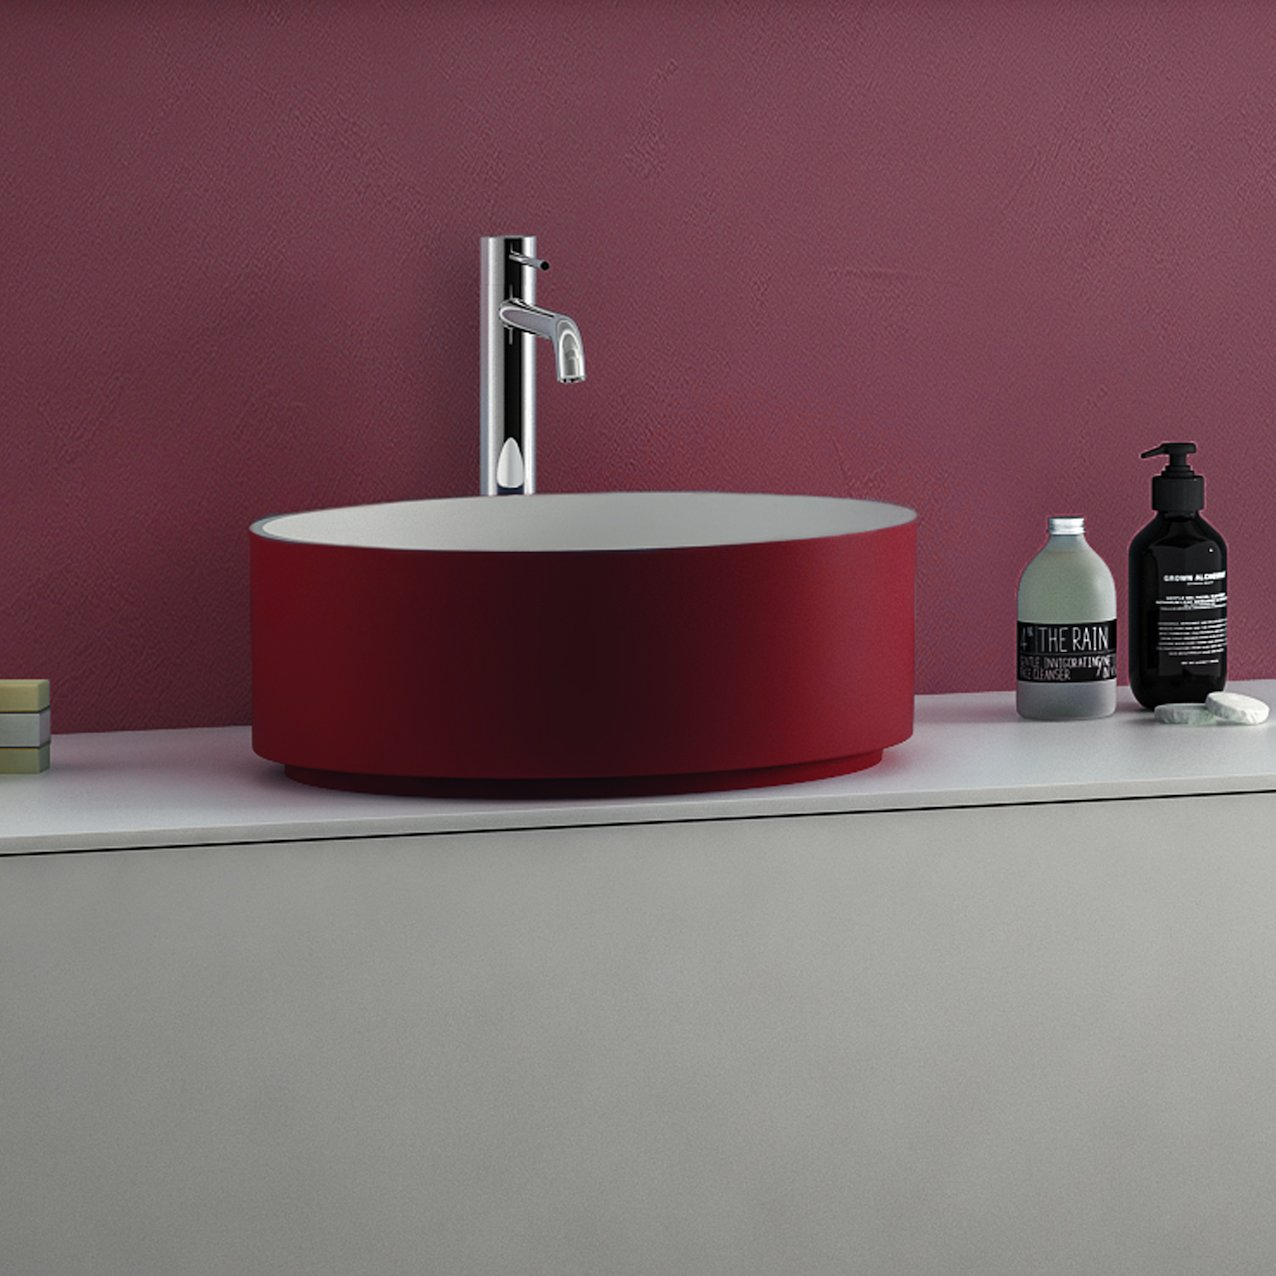 Tecnoril countertop washbasin